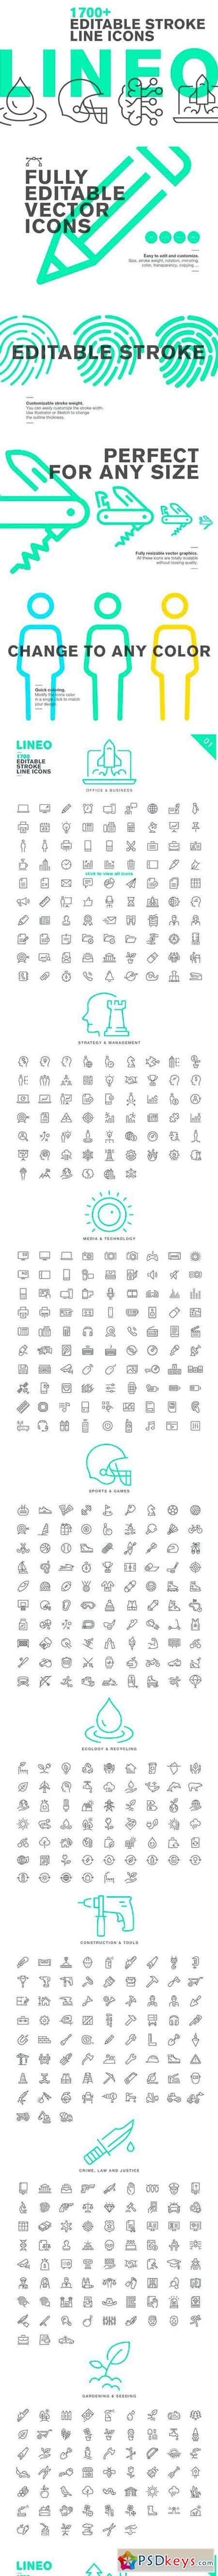 LINEO - 1700+ fully editable icons 2517764 » Free Download